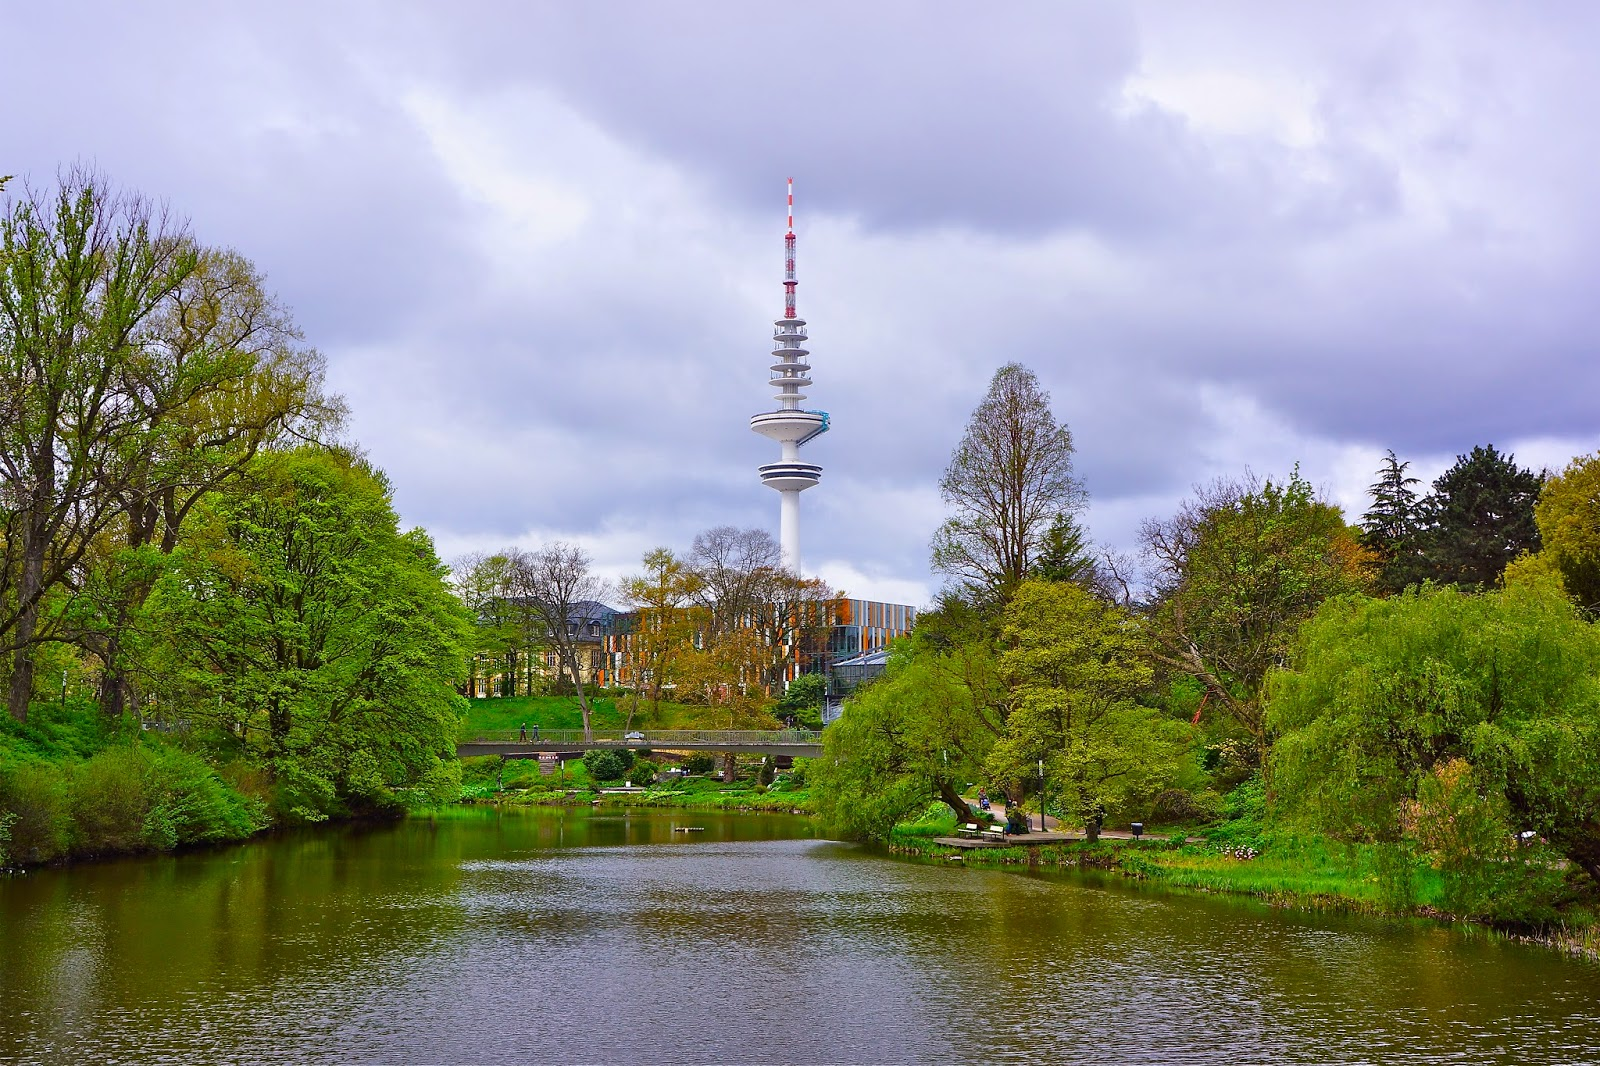 Picture of the Henrich Hertz TV tower in Hamburg, Germany.